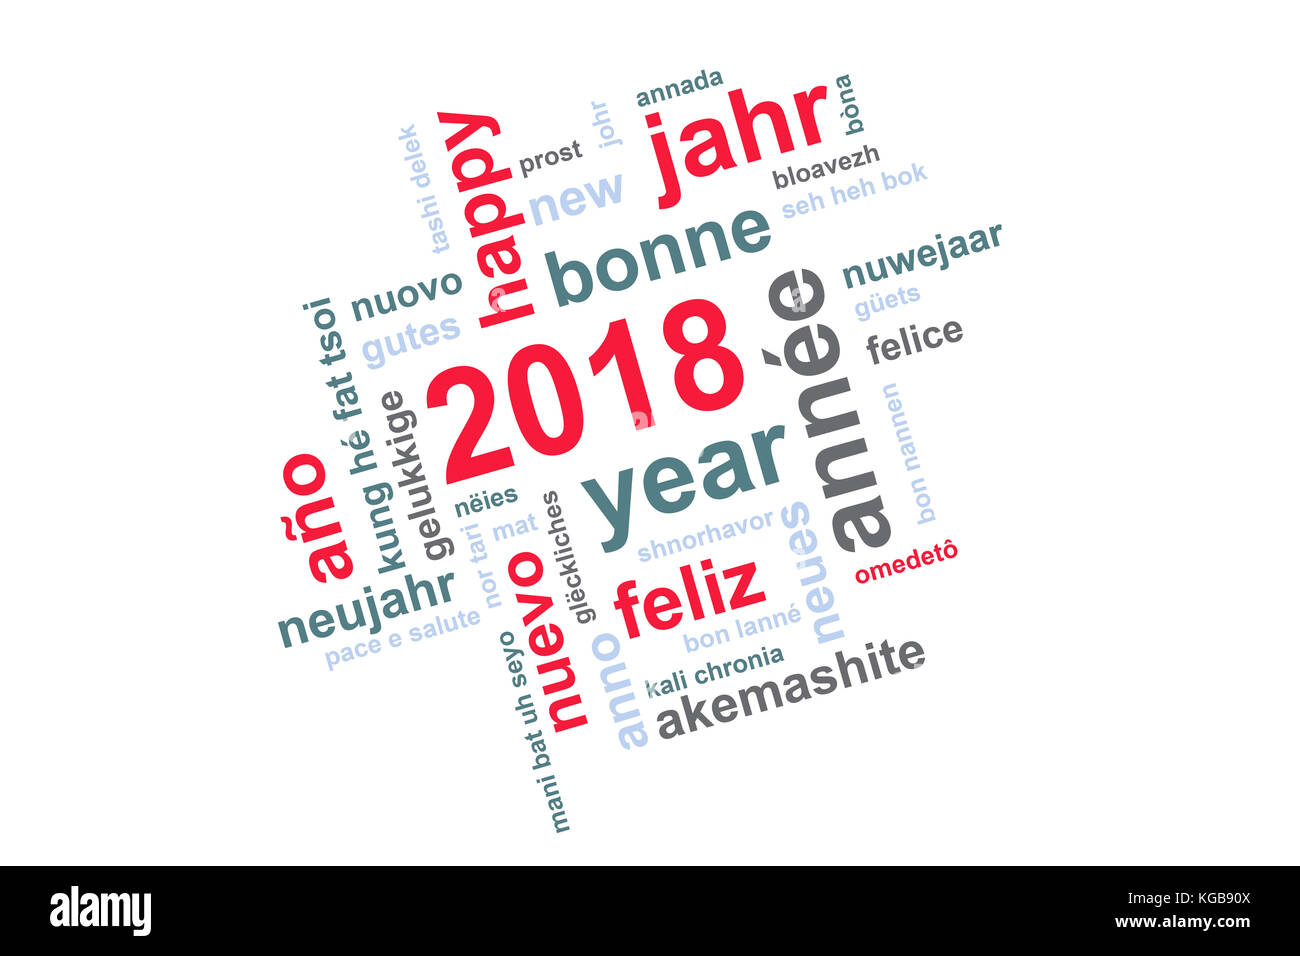 Happy New Year Cut Out Stock Images & Pictures - Alamy